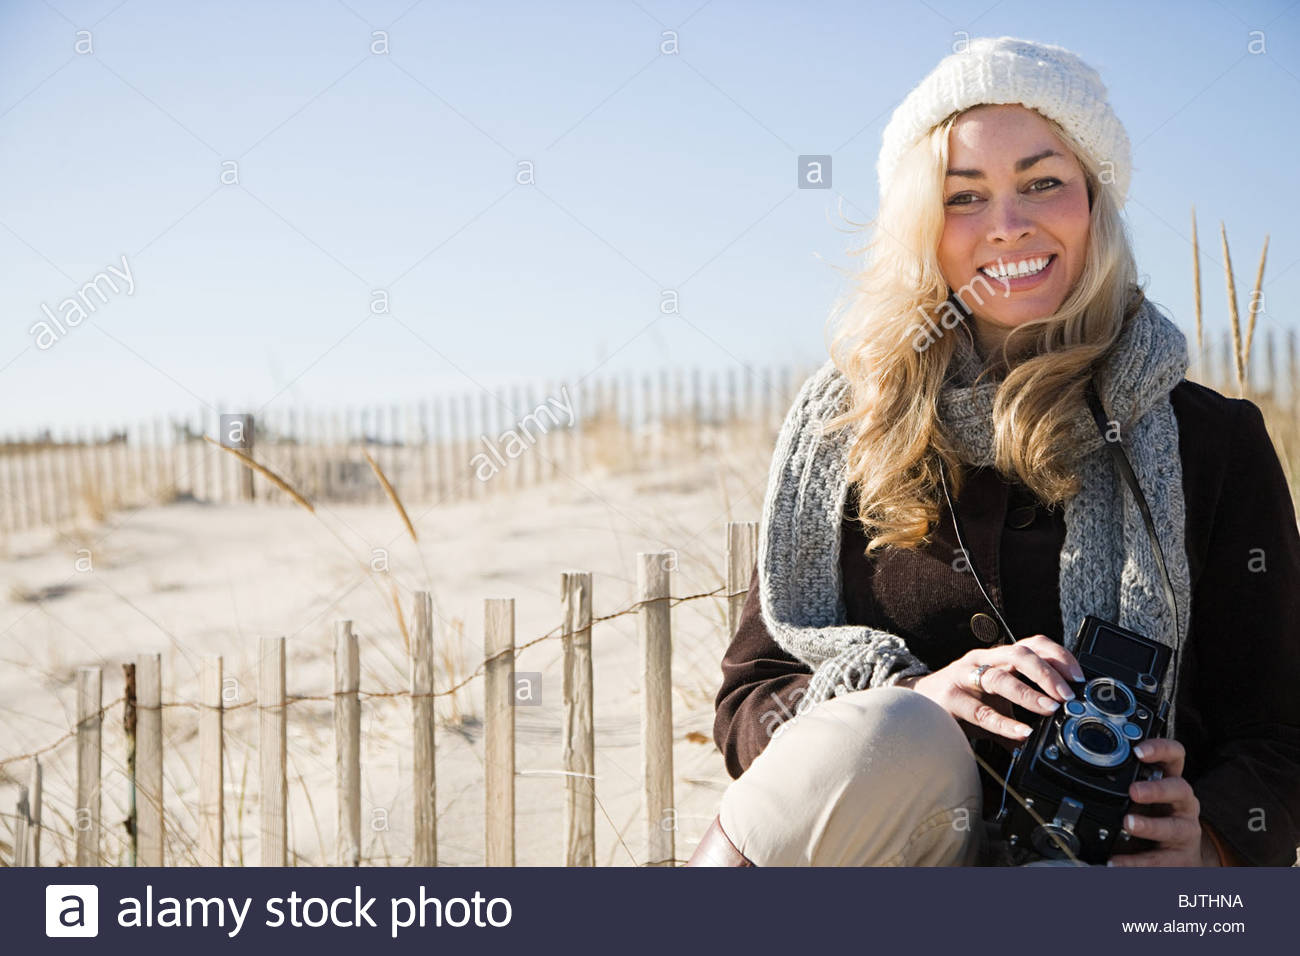 Woman at beach with camera Stock Photo